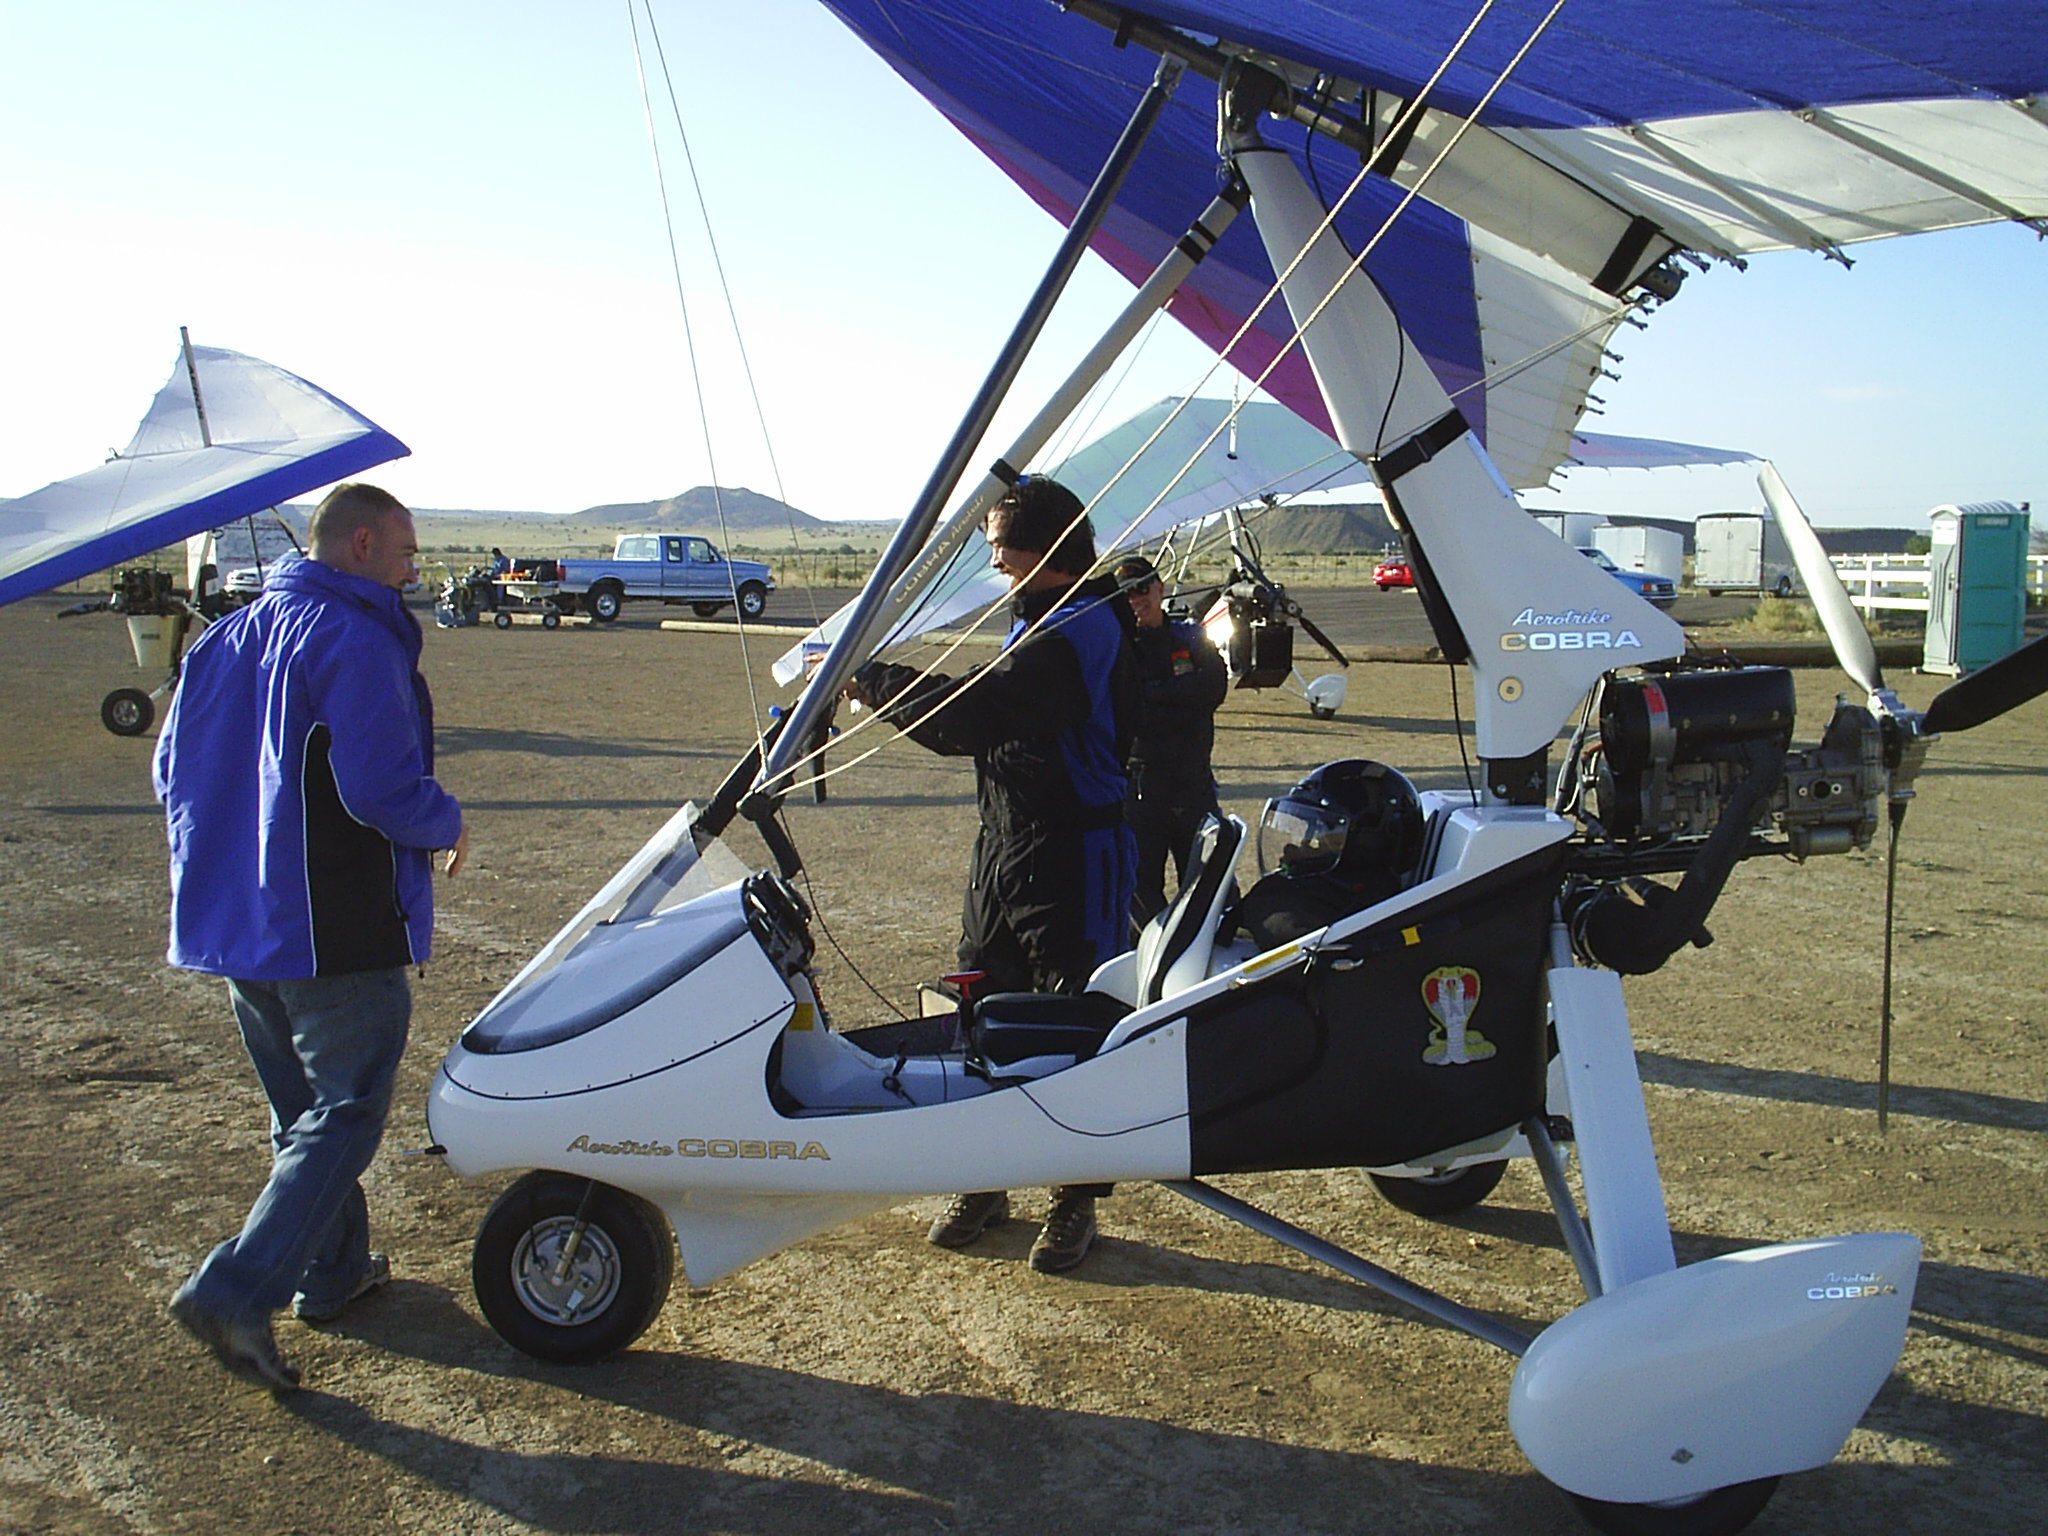 New Mexico Trikes and Hang Glider flights, CFI, Aeros trikes and wings